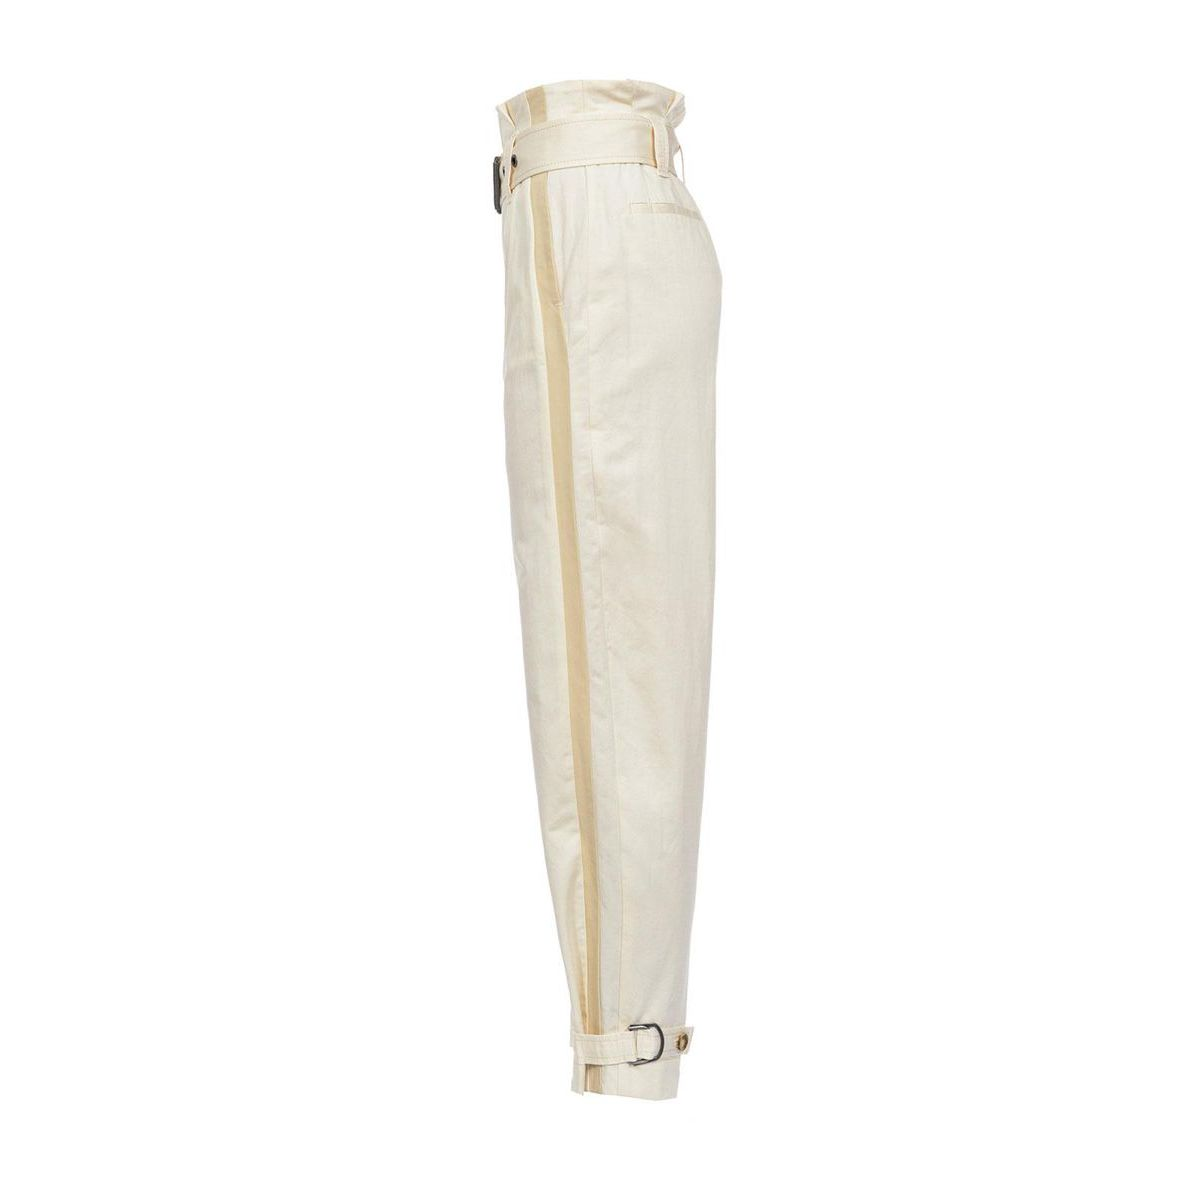 Pippo trousers Rasatello trousers in cotton and linen Light beige Pinko